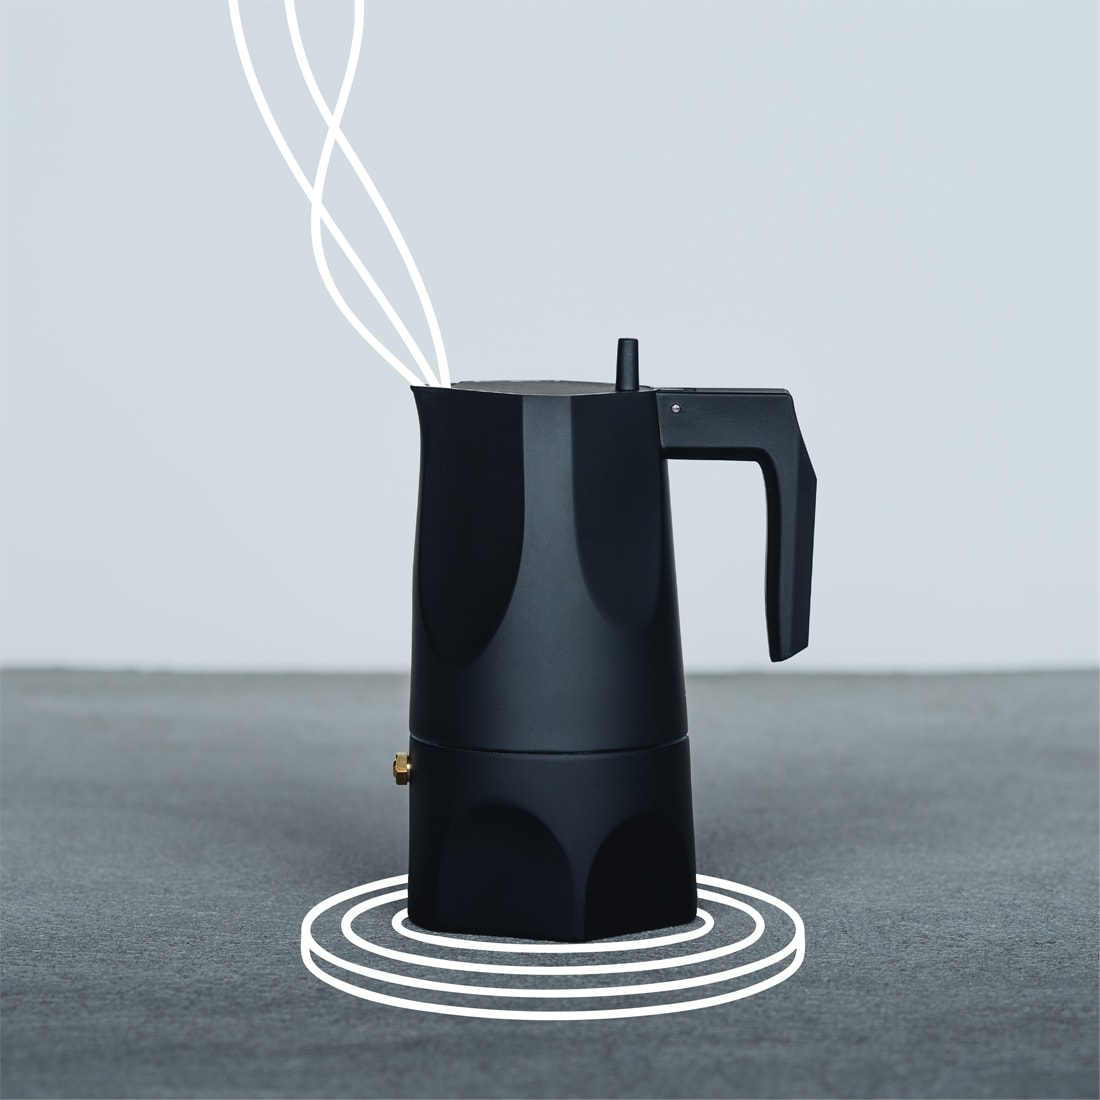 Stovetop brewer with overlaid line illustration of a stovetop coil under the brewer and steam emitting from the top opening